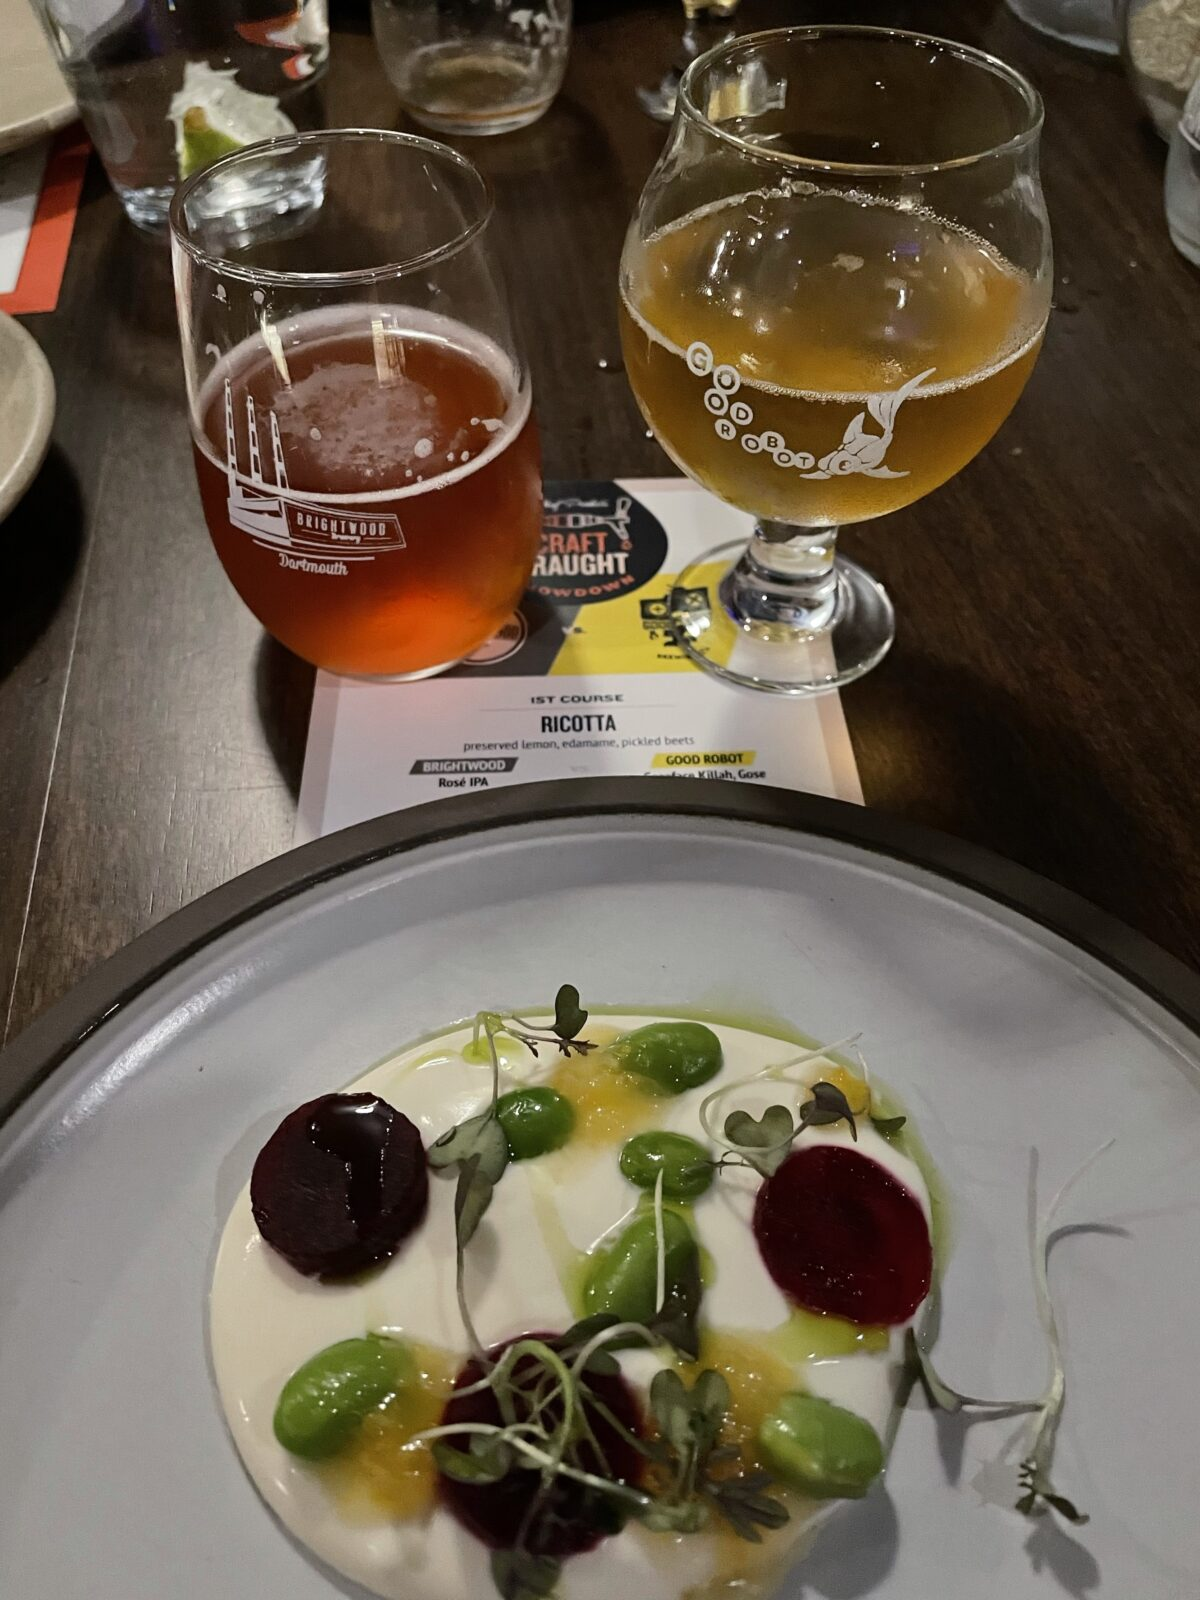 Round 1 beers and ricotta